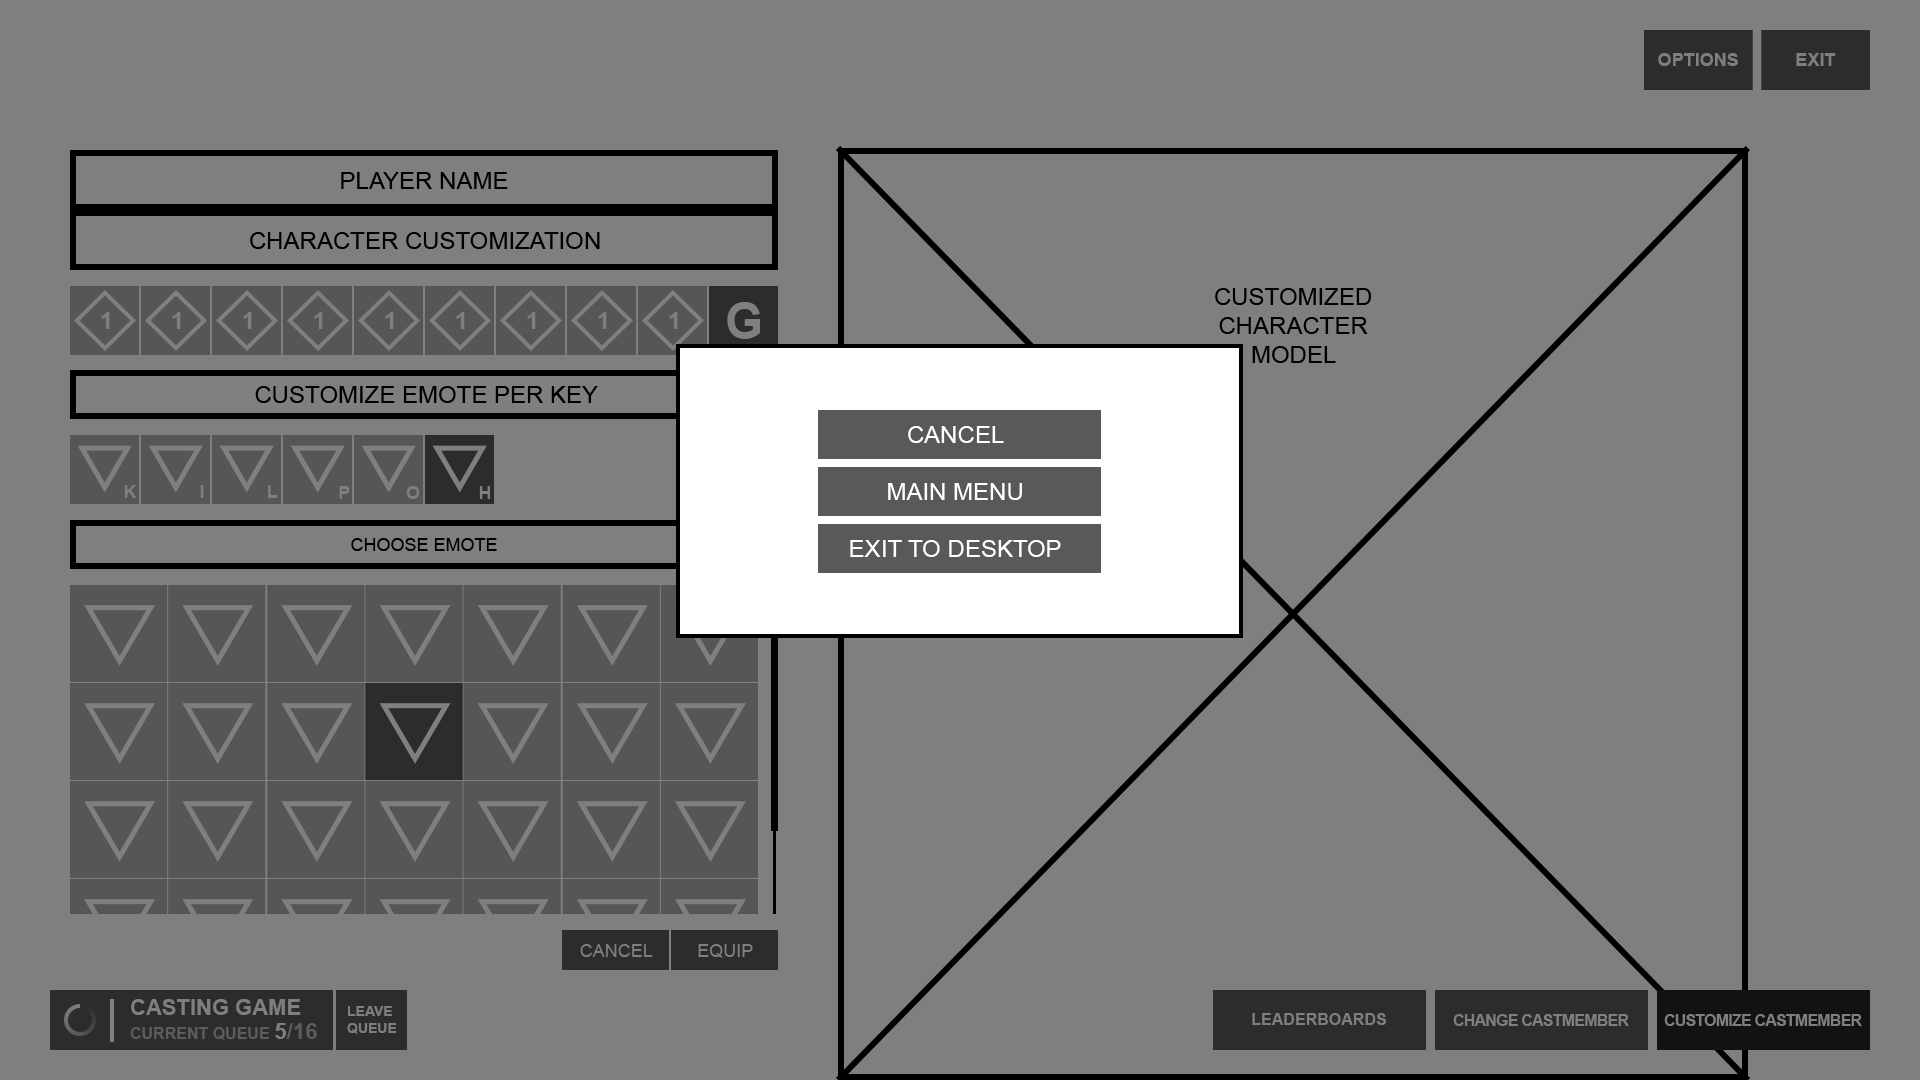 SOS_GameFlow_Wireframes_v4_00_17